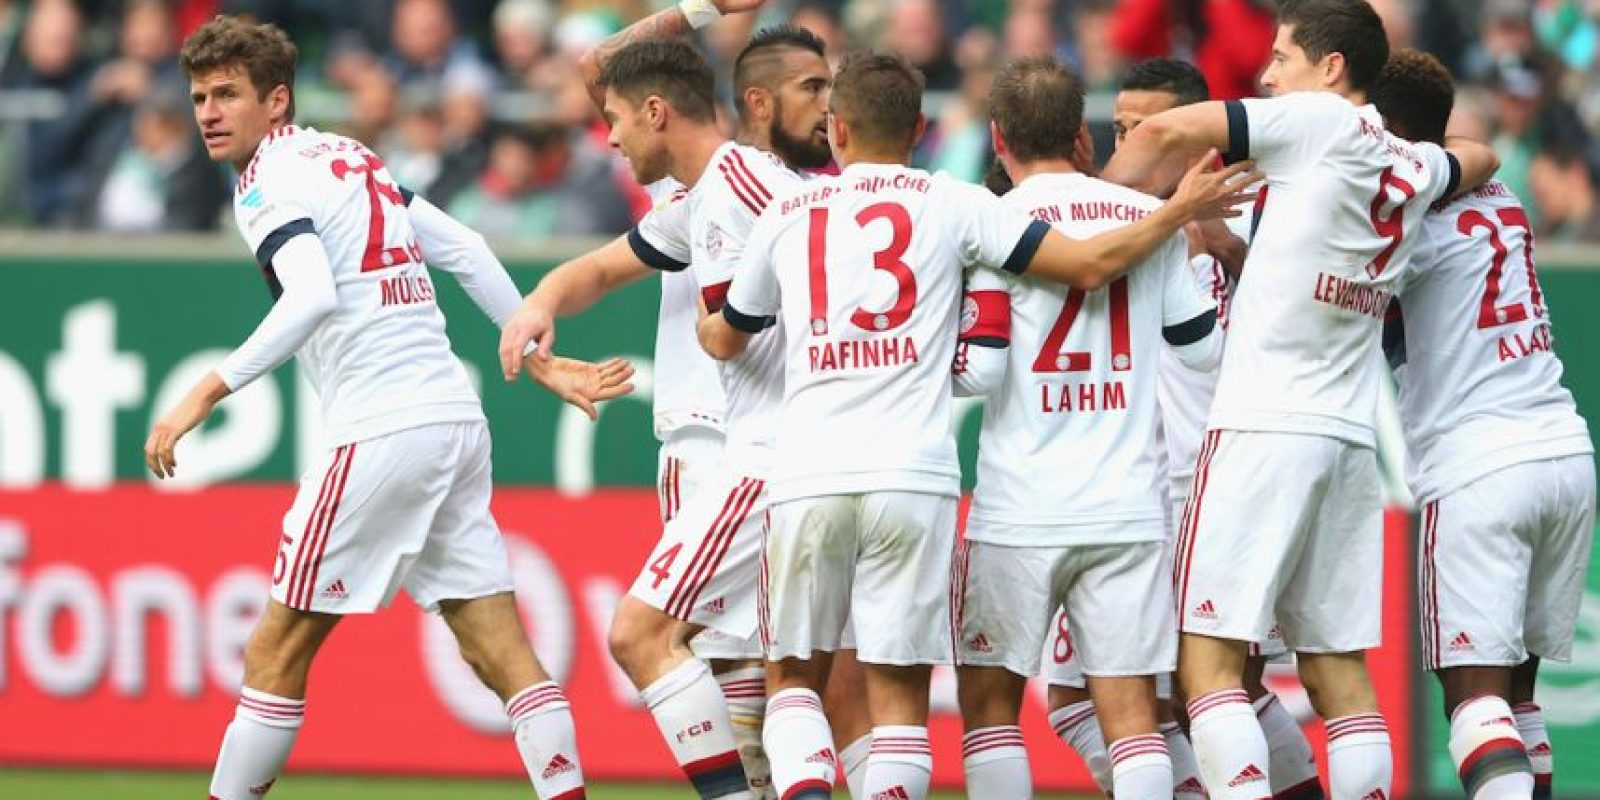 BUNDESLIGA: Bayern Munich (1) vs. Colonia (6) en Allianz Arena Foto: Getty Images